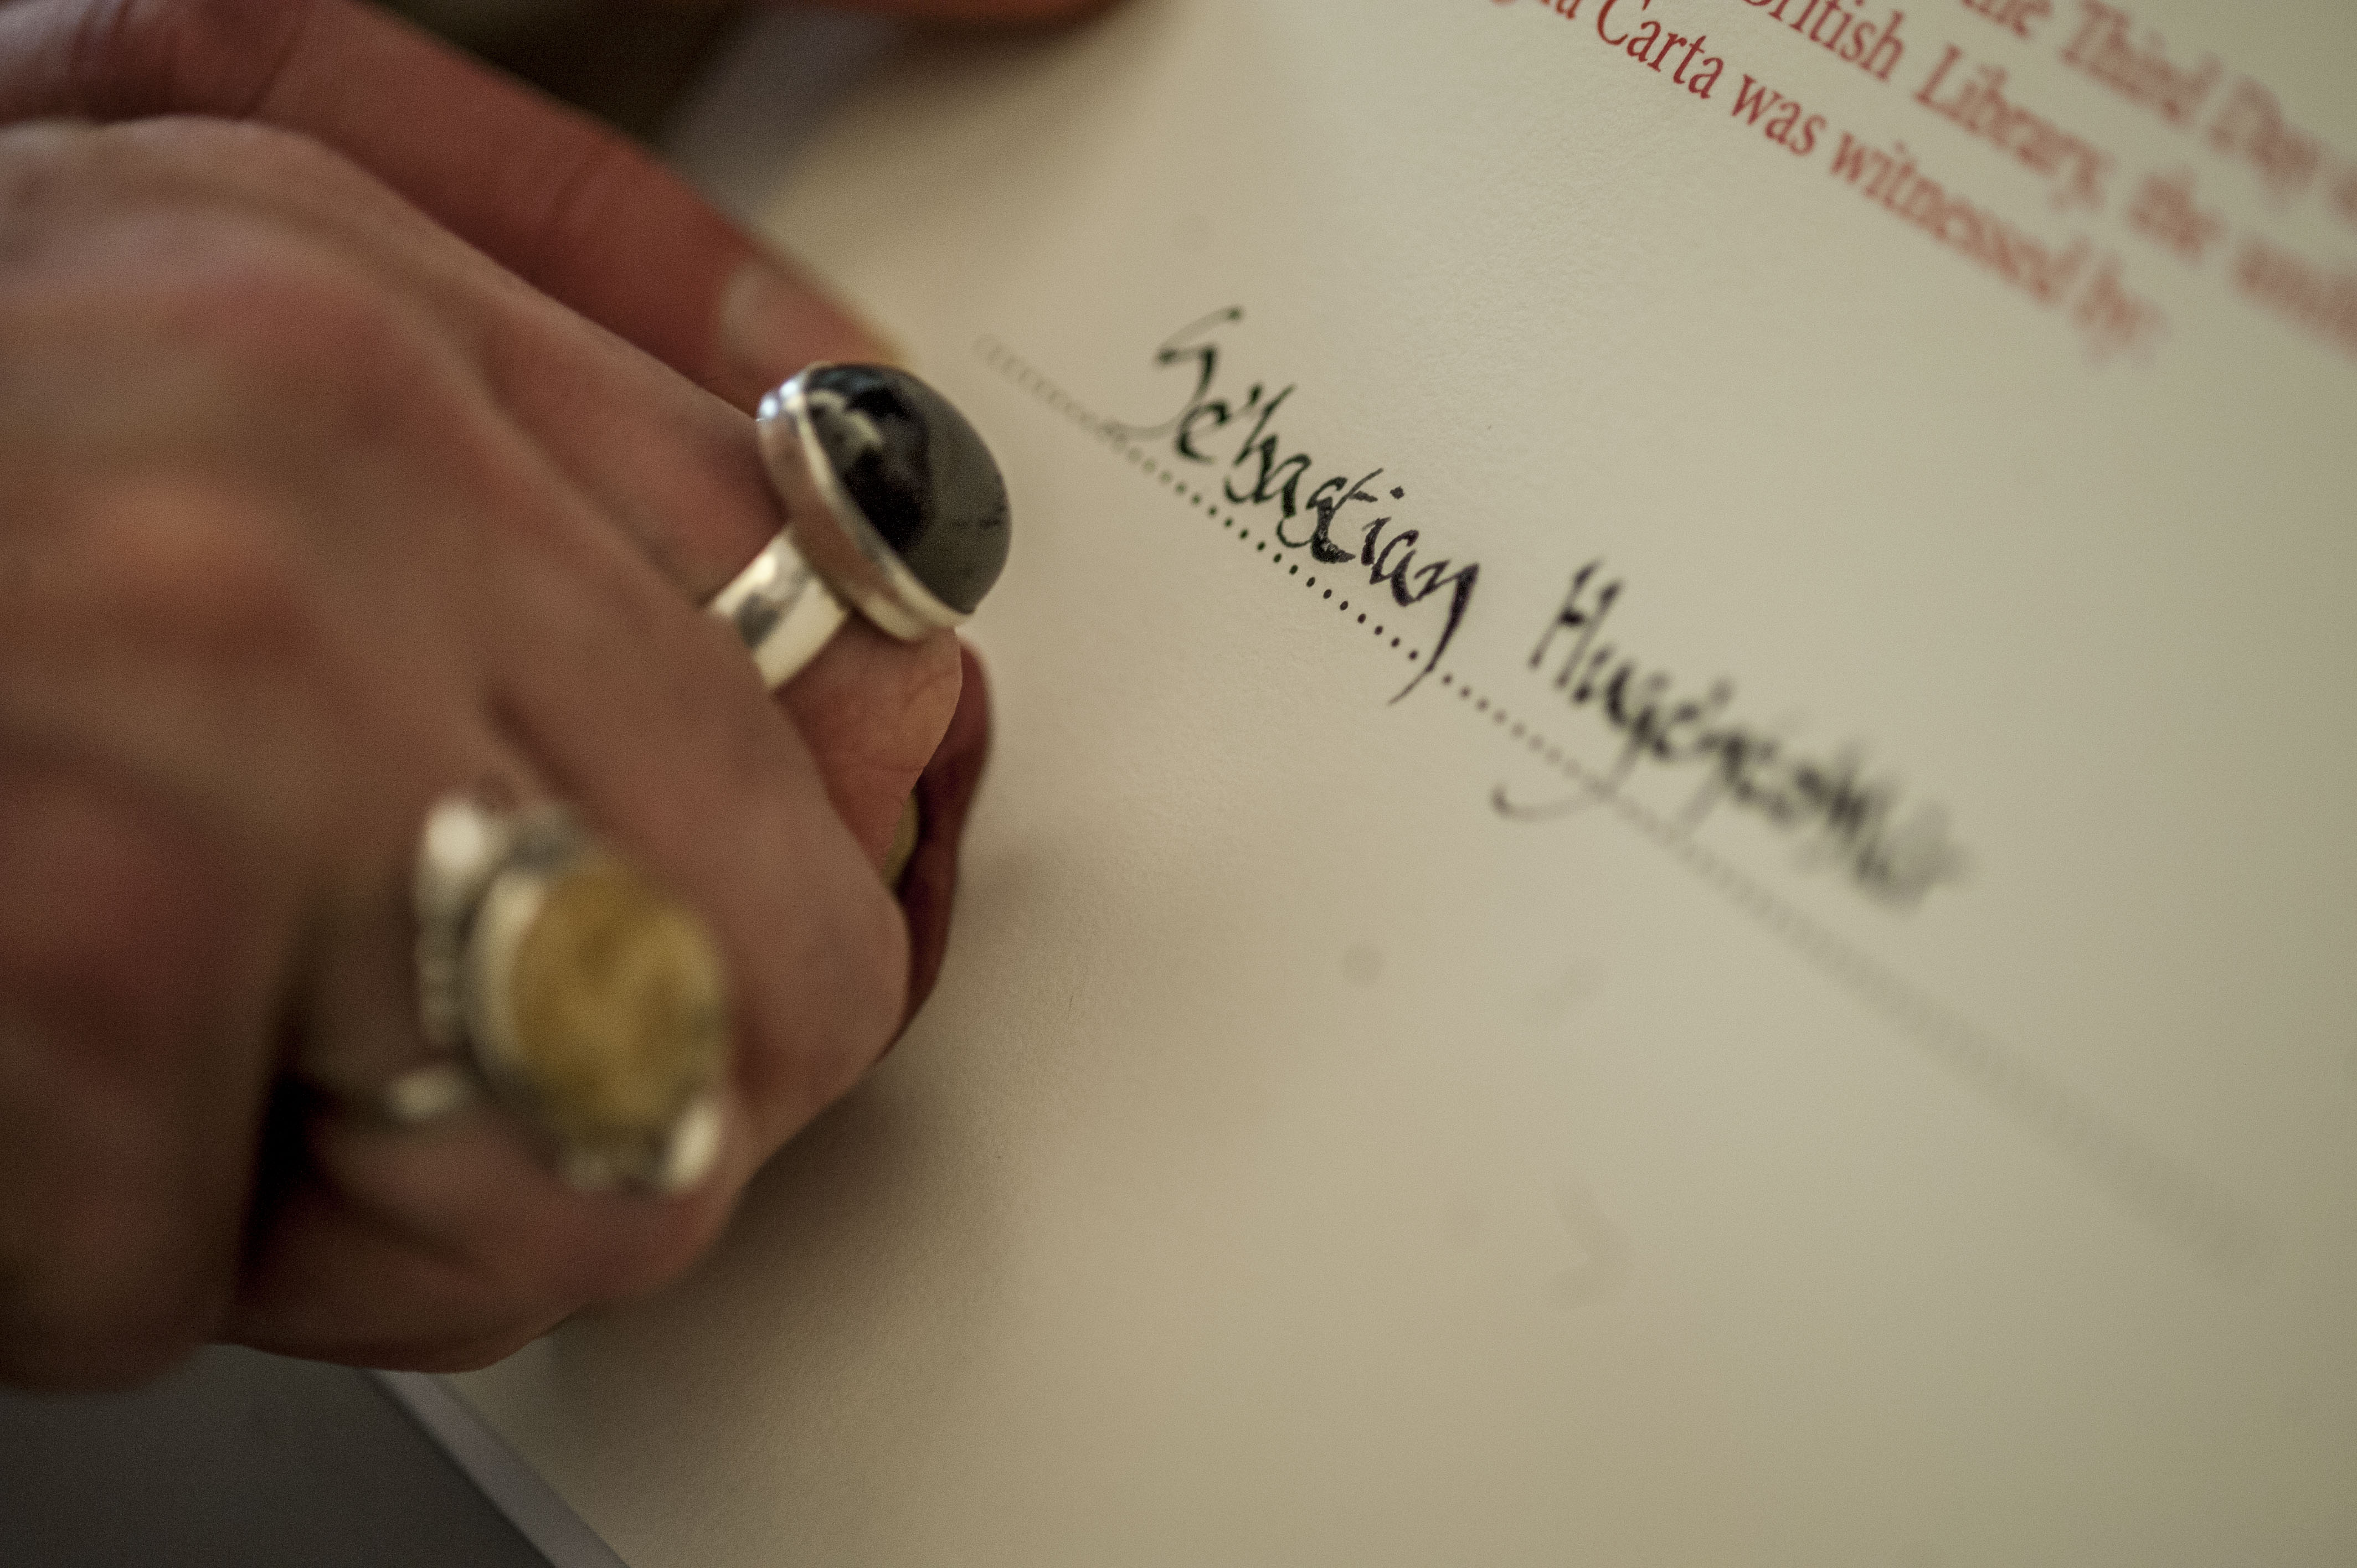 A certificate being sealed with wax at the Magna Carta unification at the British Library.